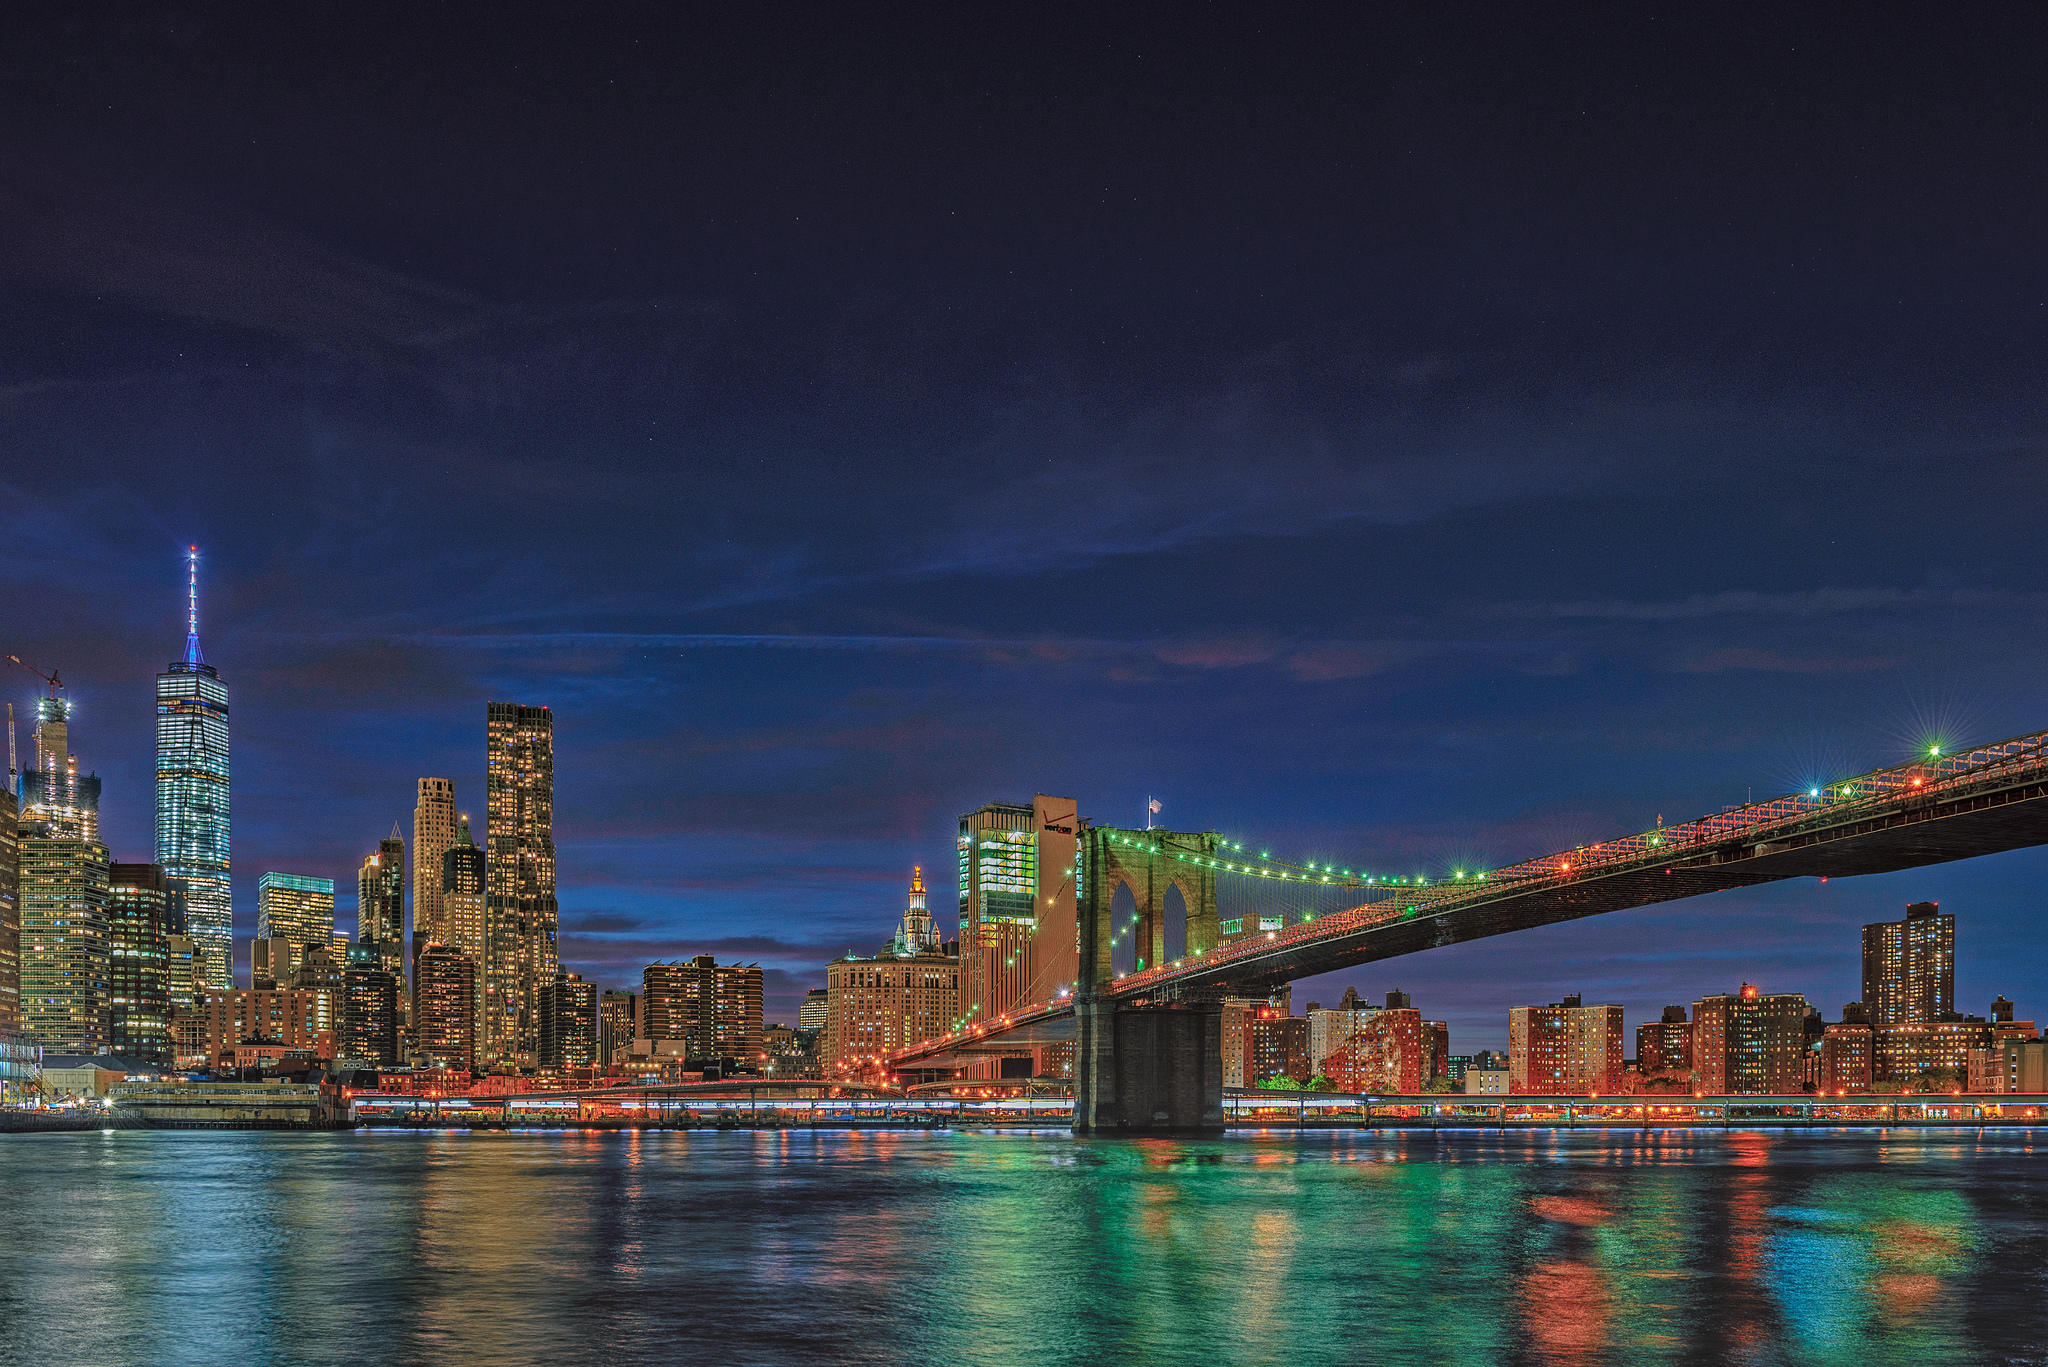 Manhattan, Brooklyn Bridge, One World Trade Center